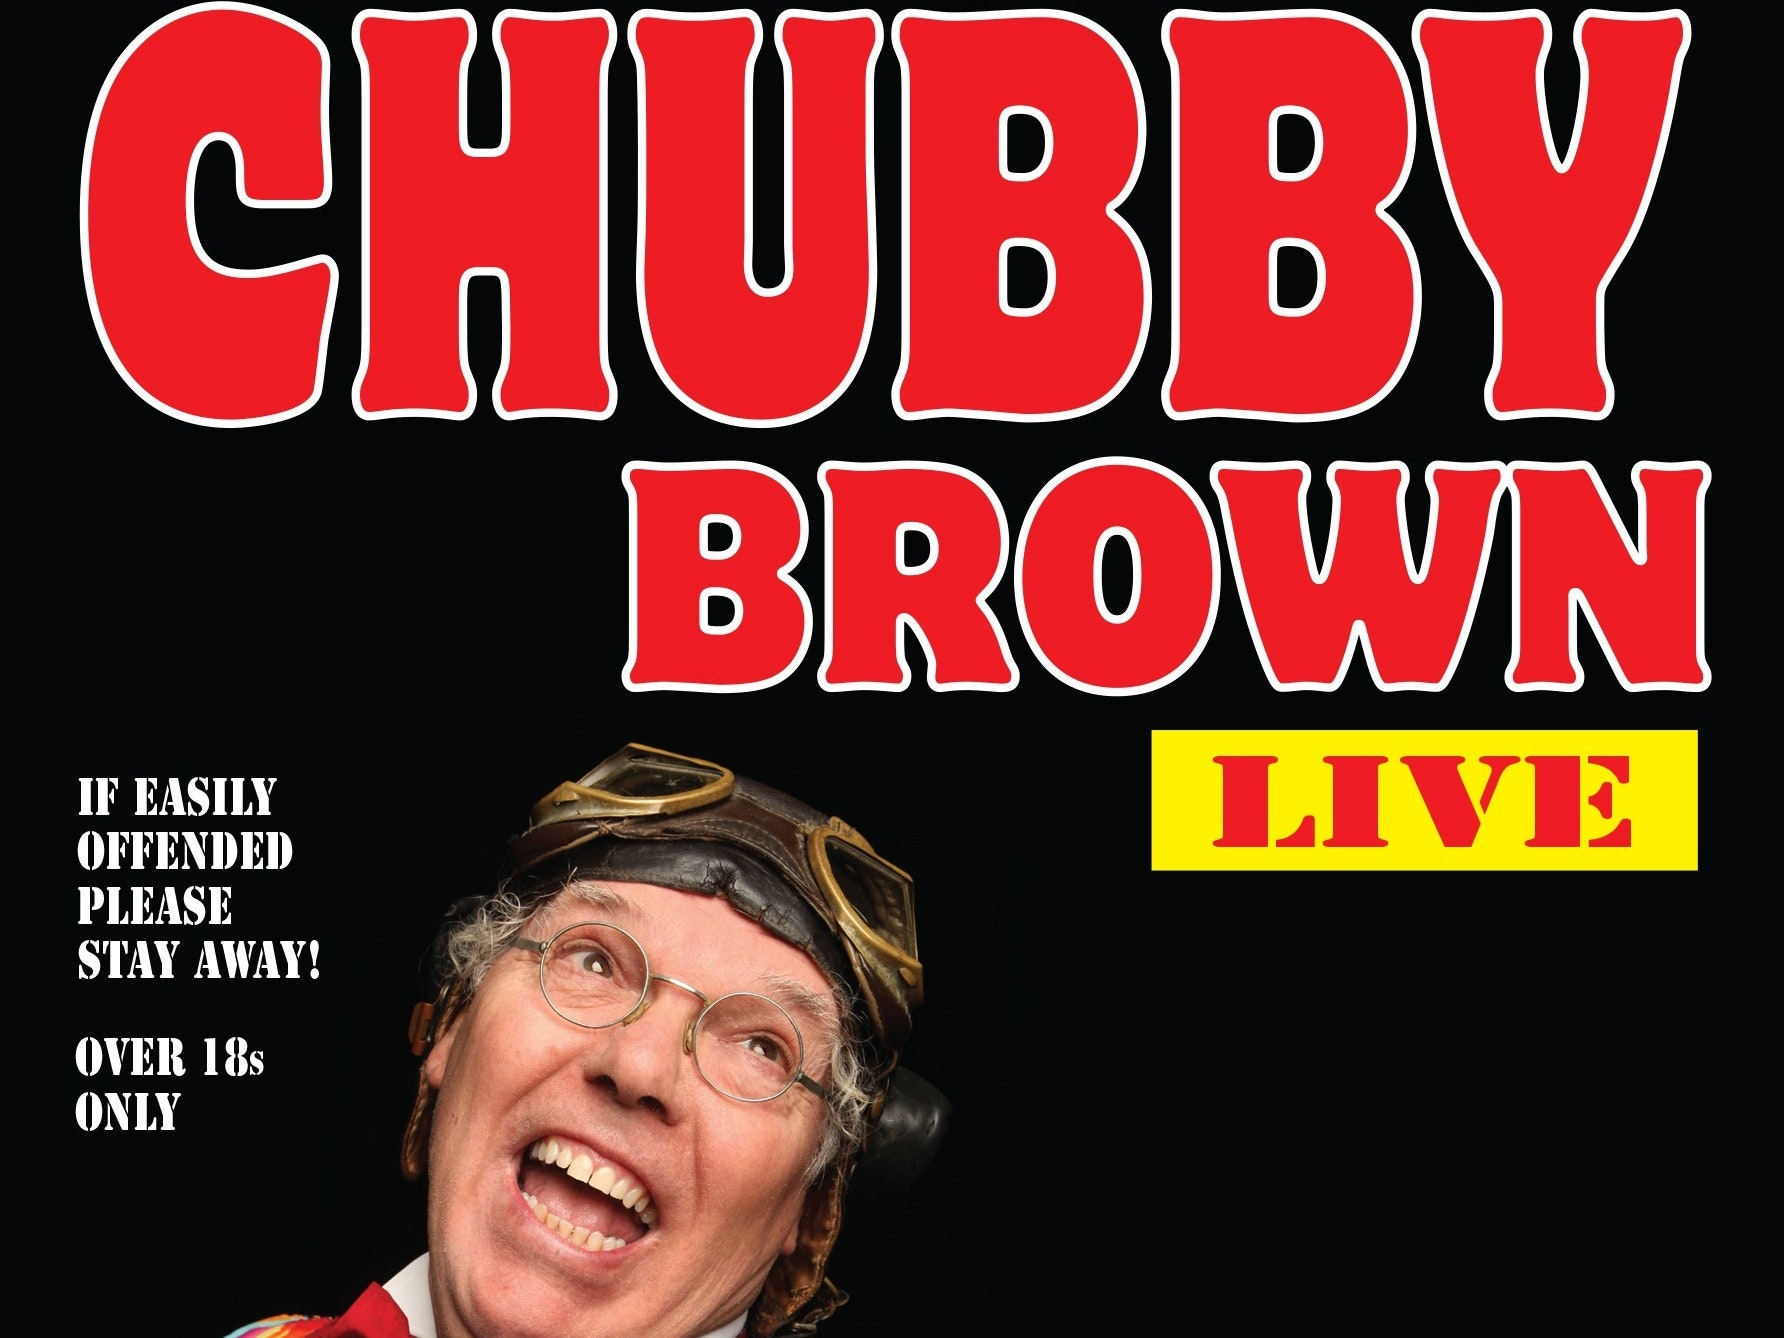 Roy chubby brown website